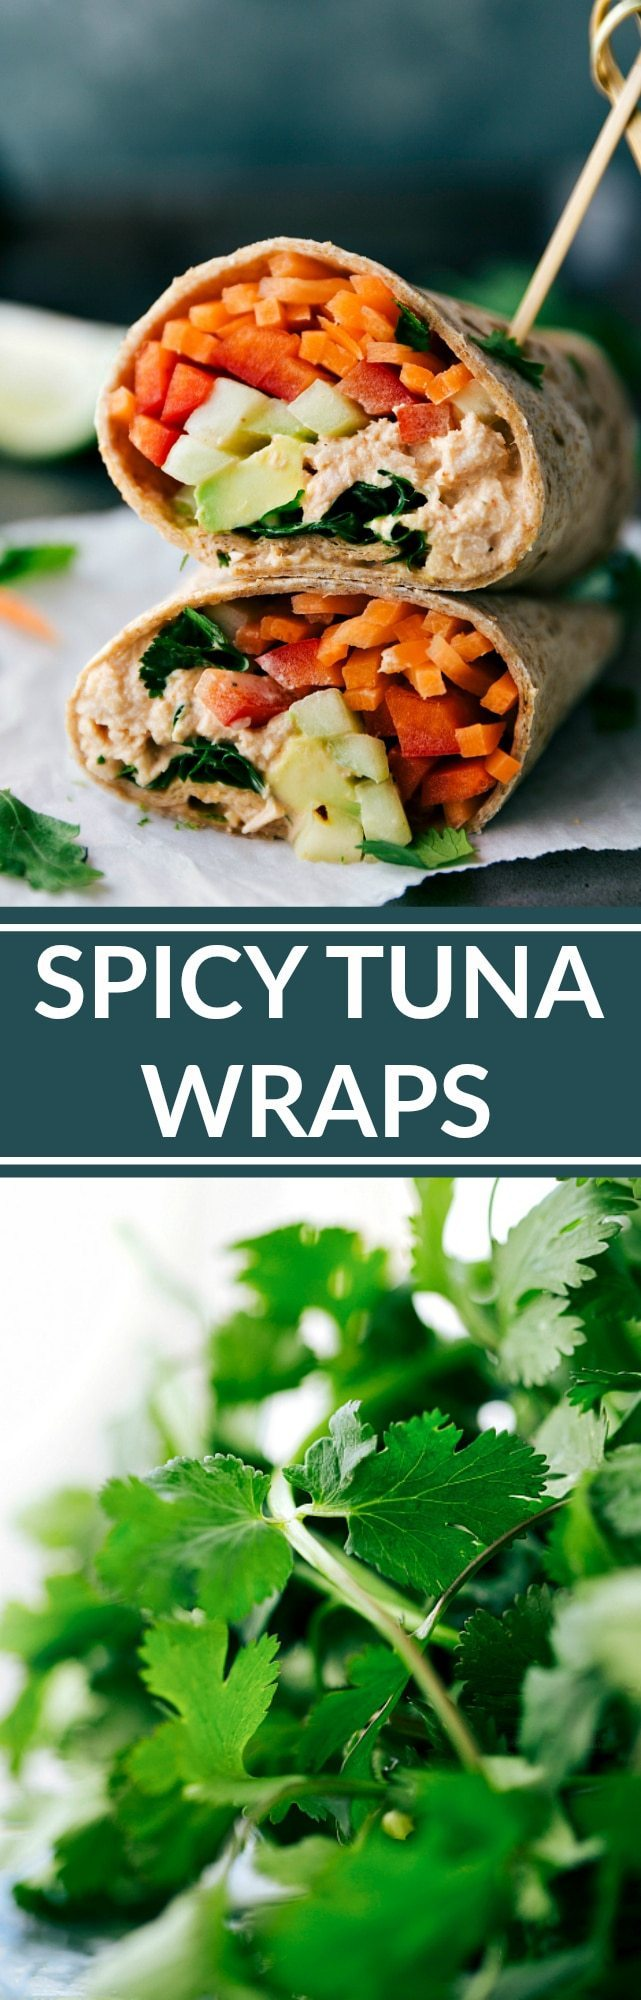 SPICY TUNA WRAPS! Healthy easy and delicious! via chelseasmessyapron.com